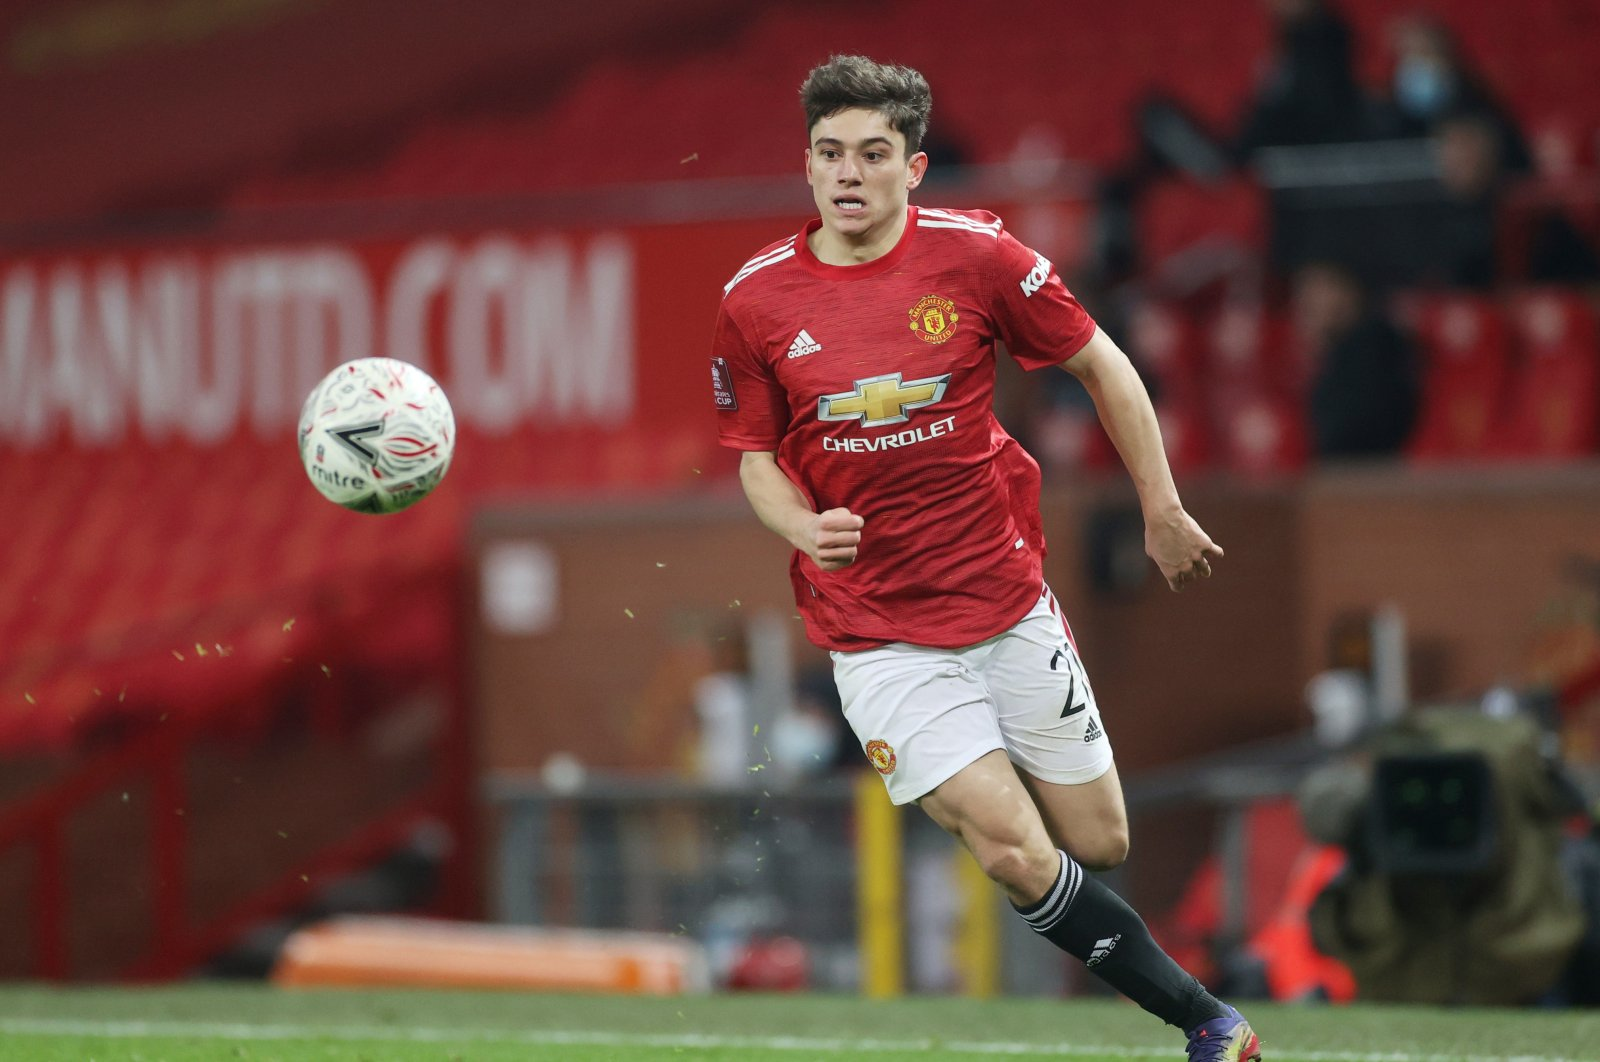 Manchester United's Daniel James in action during a Premier League match against Watford at the Old Trafford stadium, in Manchester, Britain, Jan. 9, 2021. (Reuters Photo)